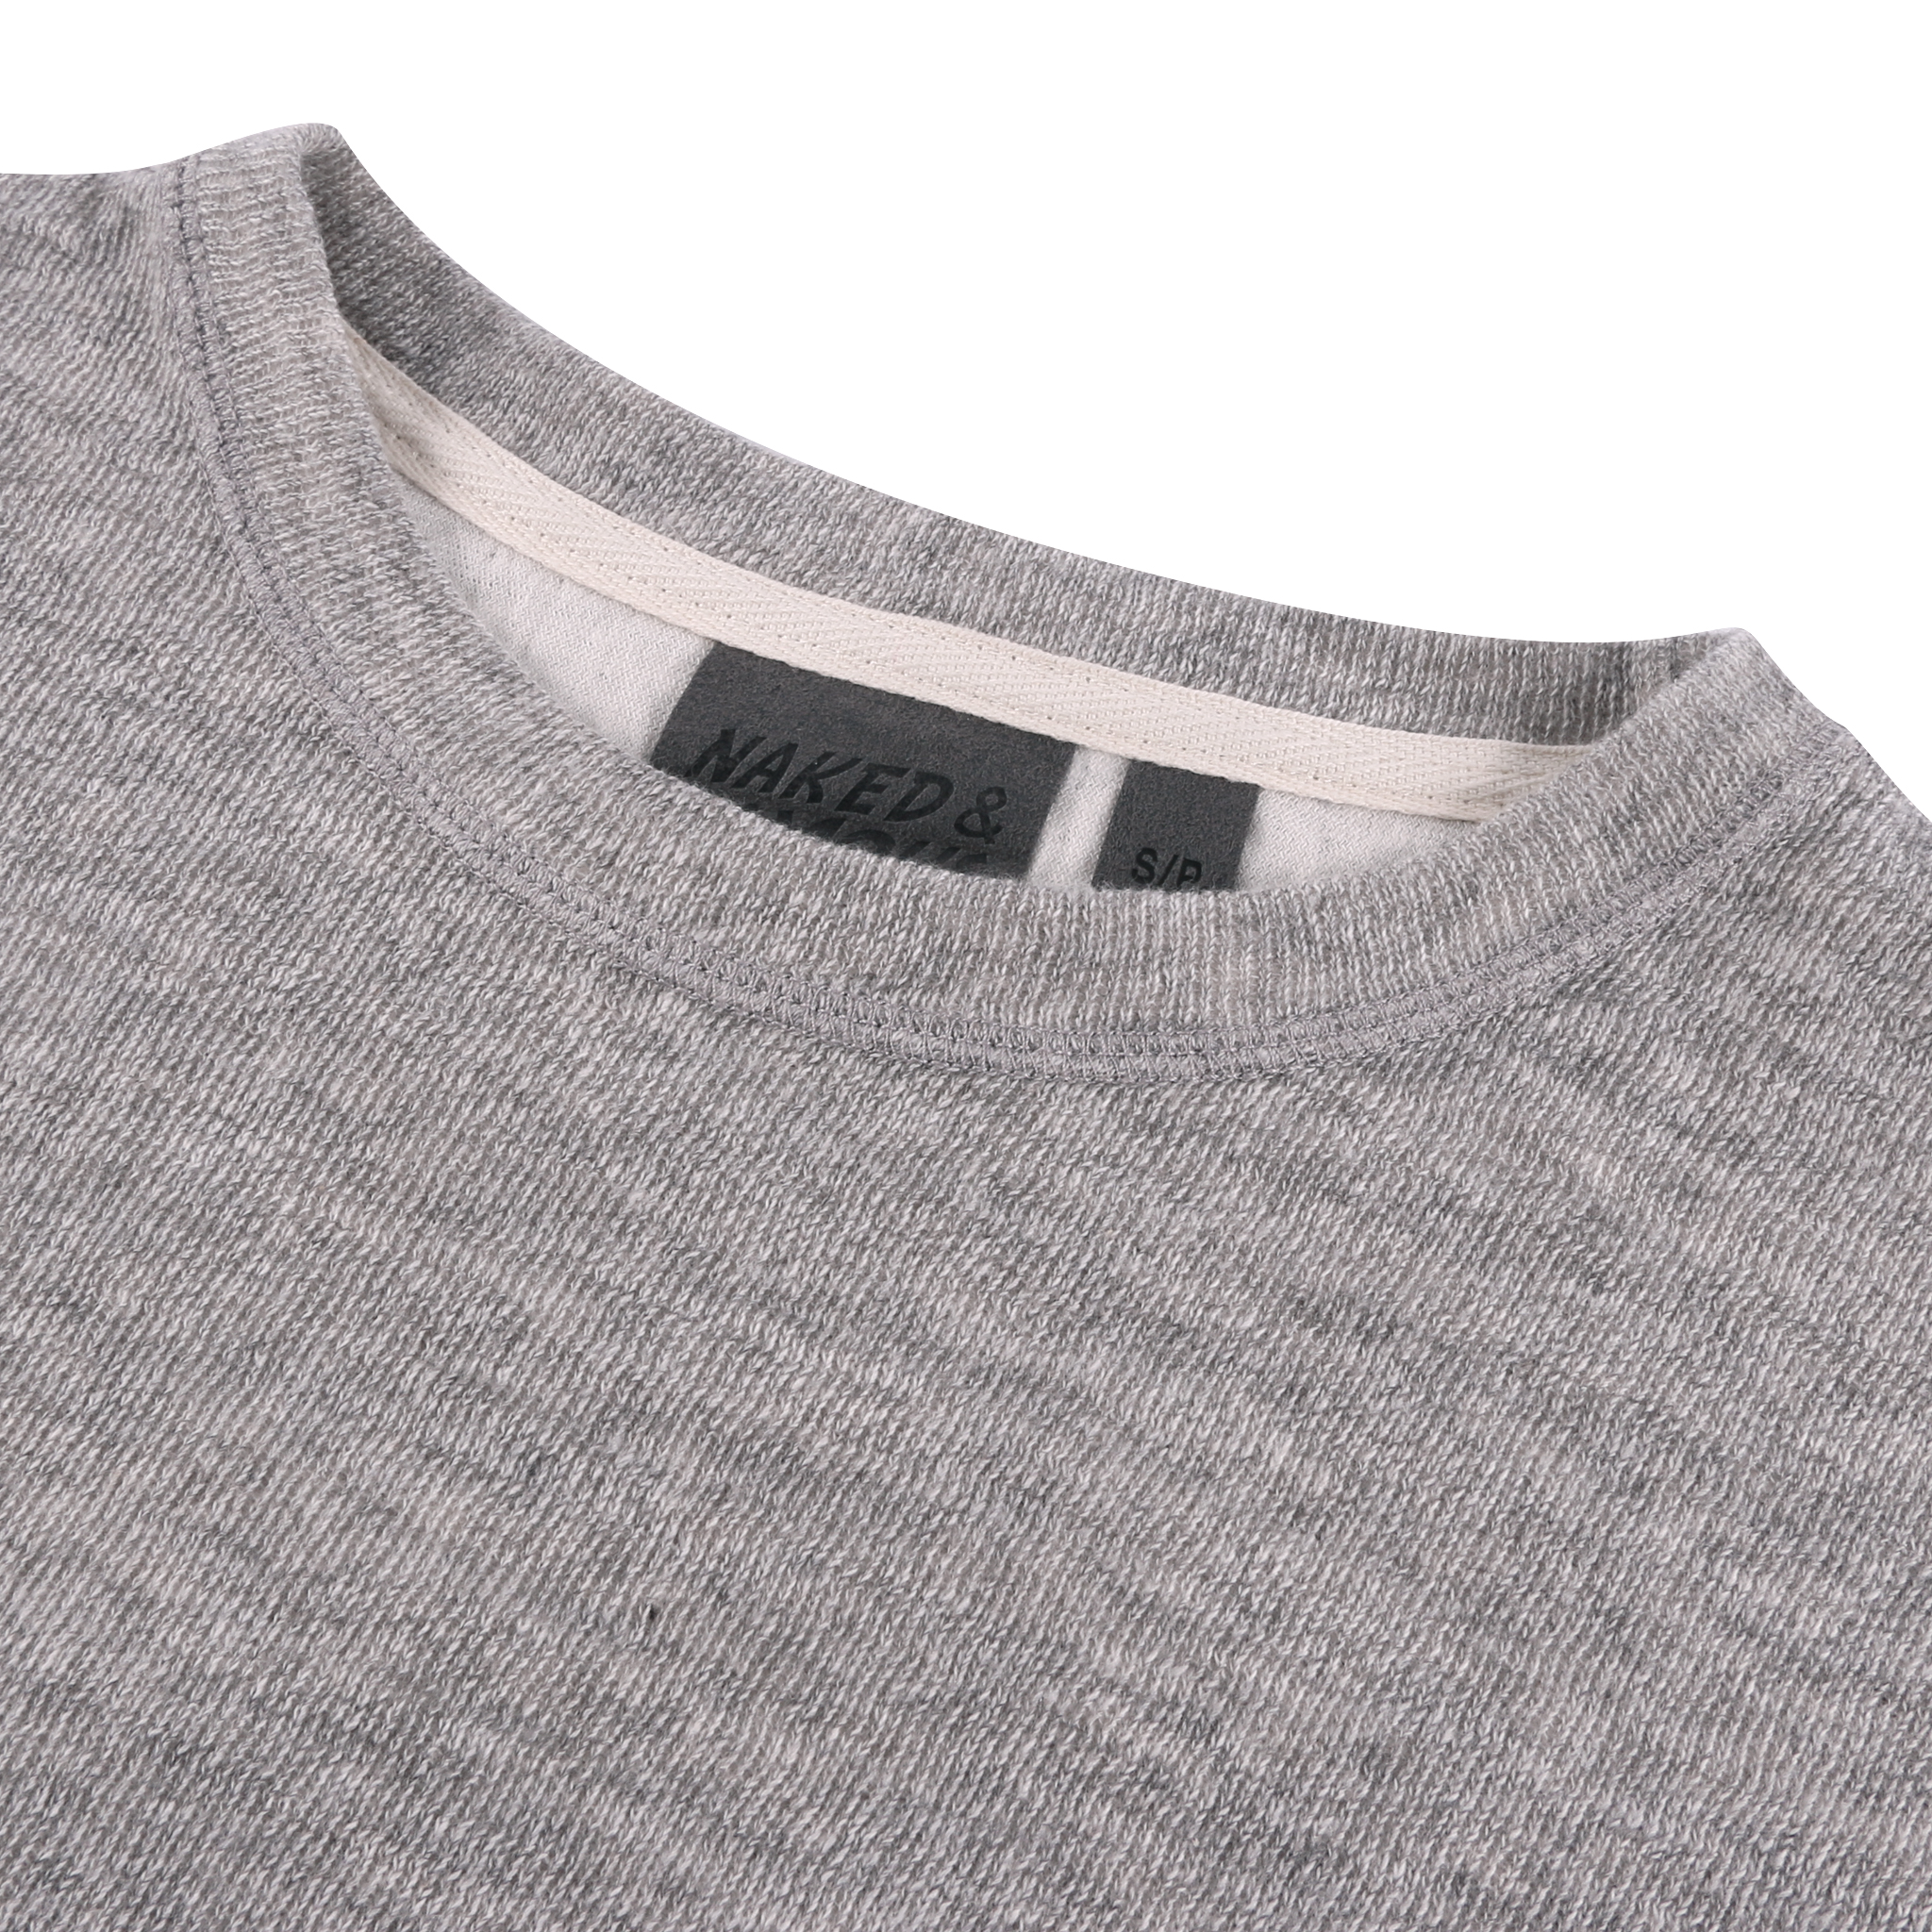 Women's Weekend Crew Vintage Double Face Grey Collar View